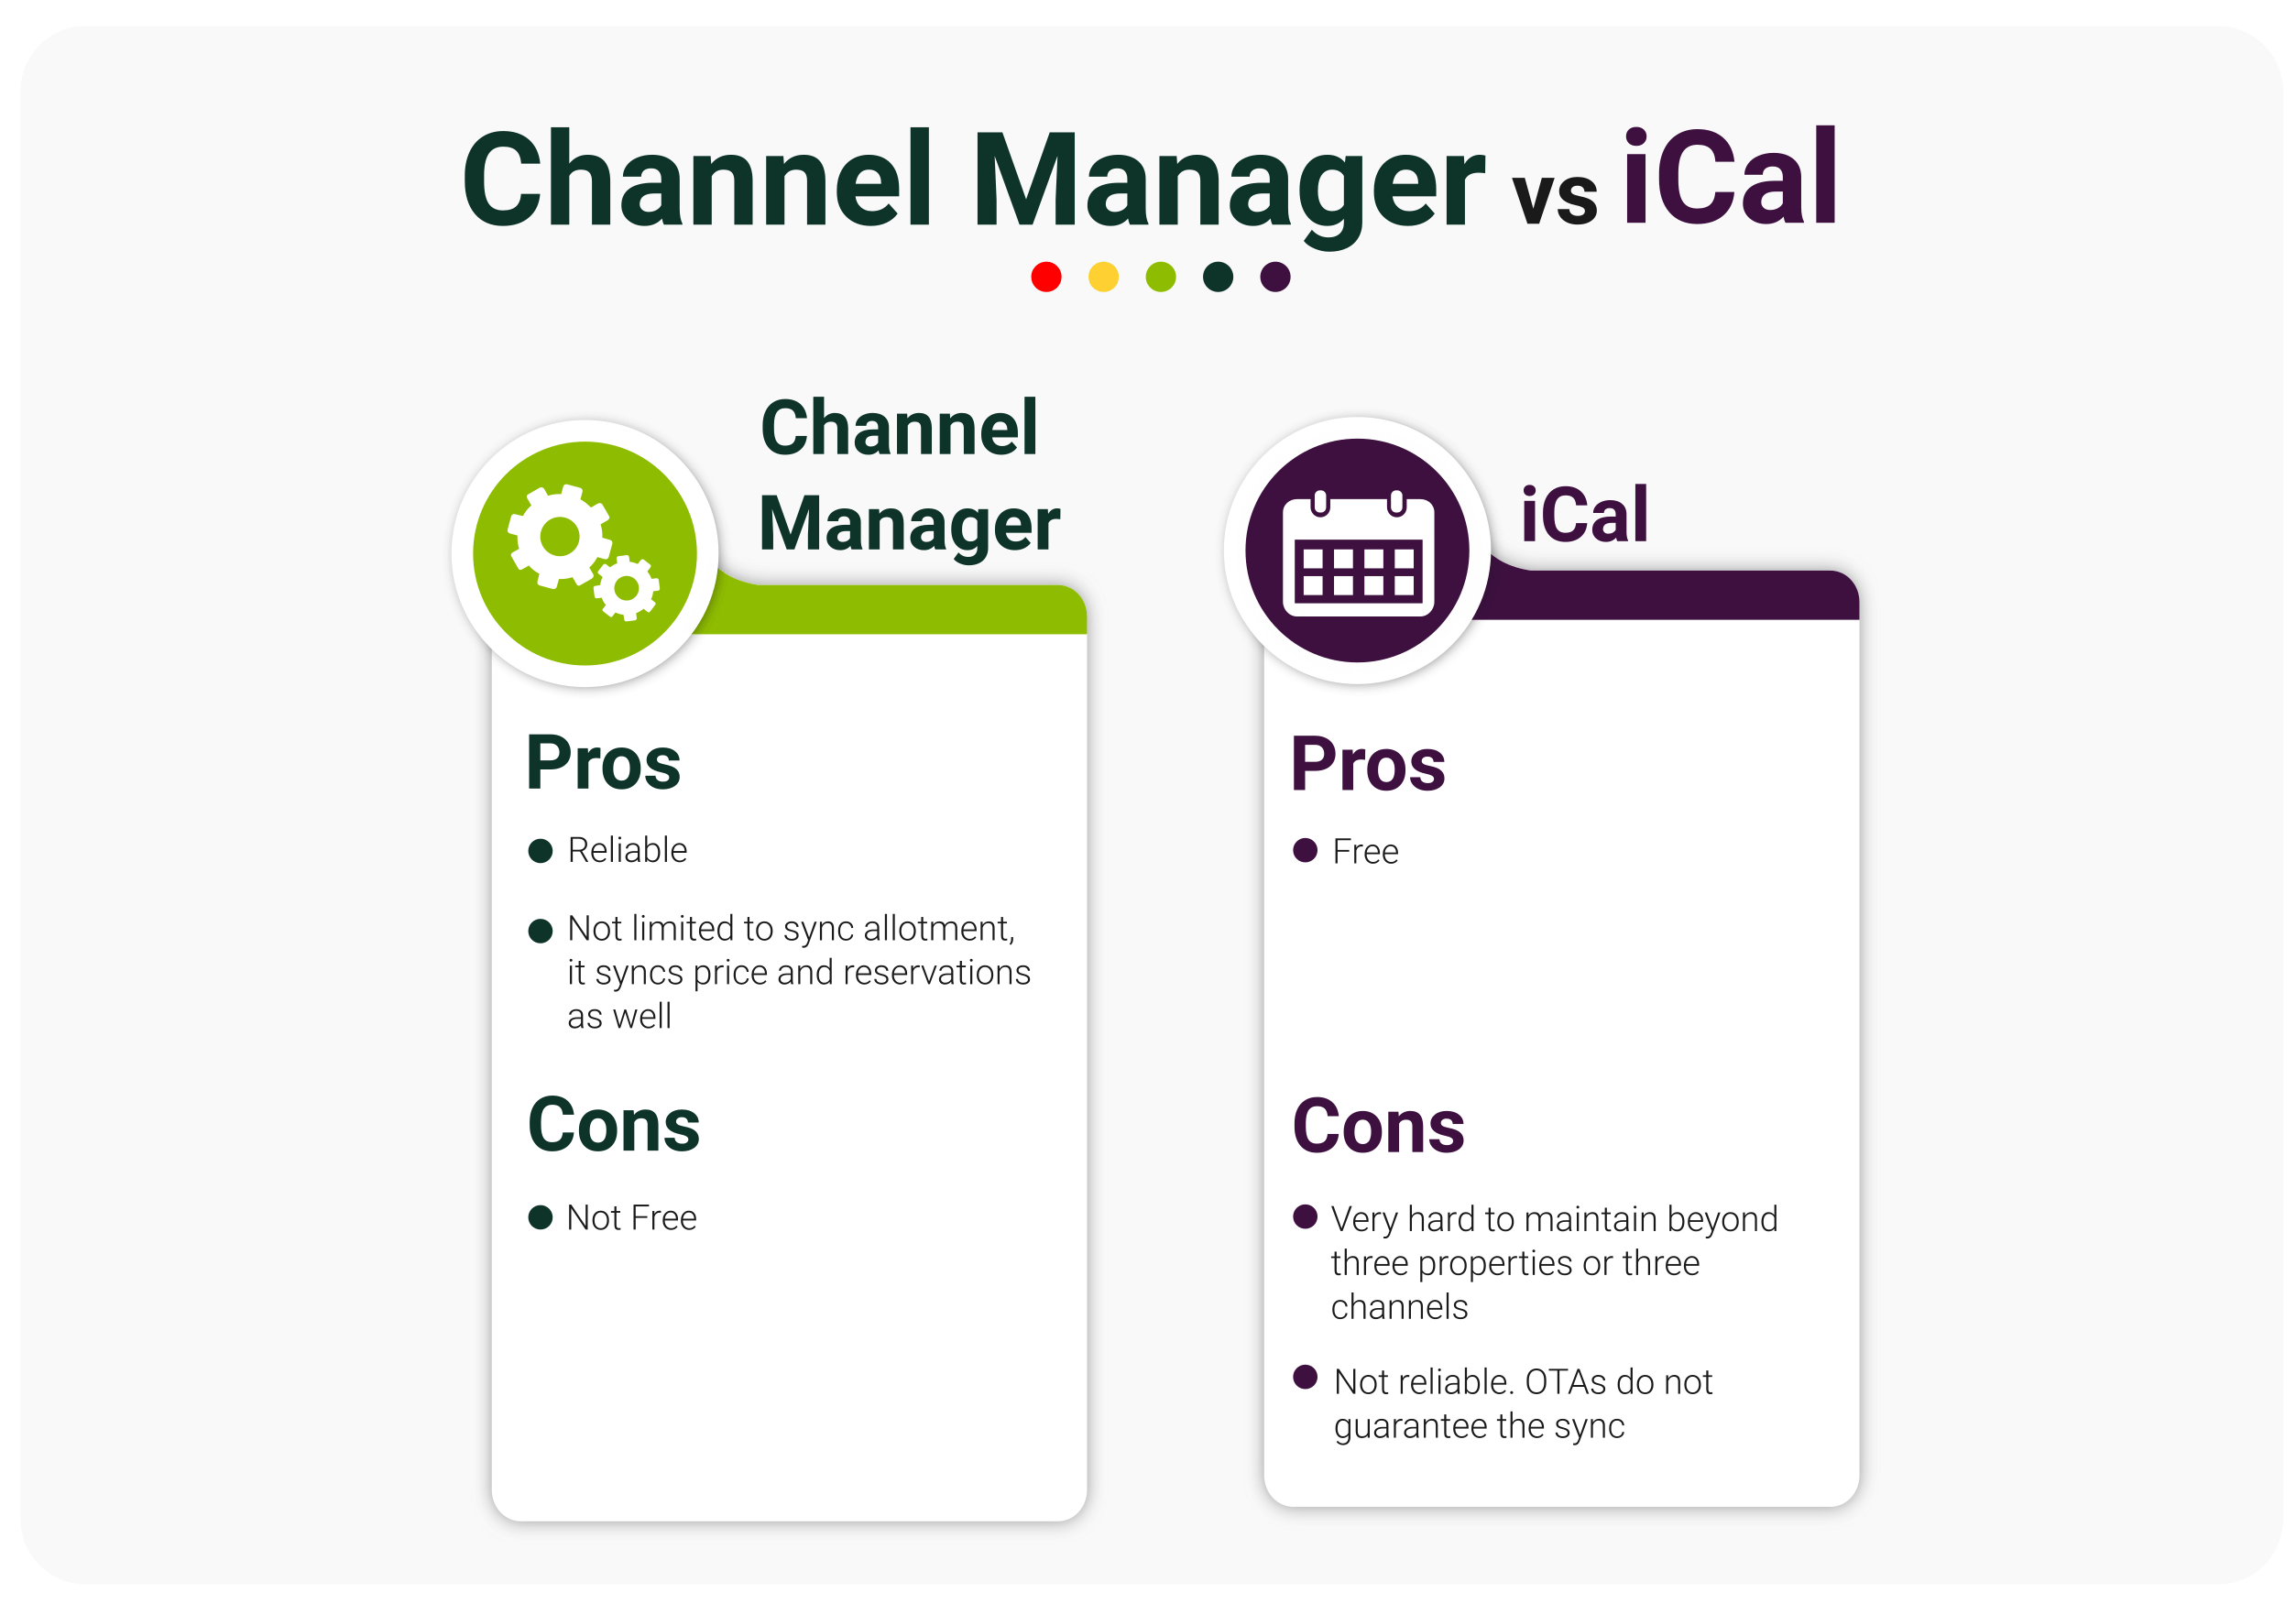 iCal, Channel Manager Pro and Cons - compressed with tinypng